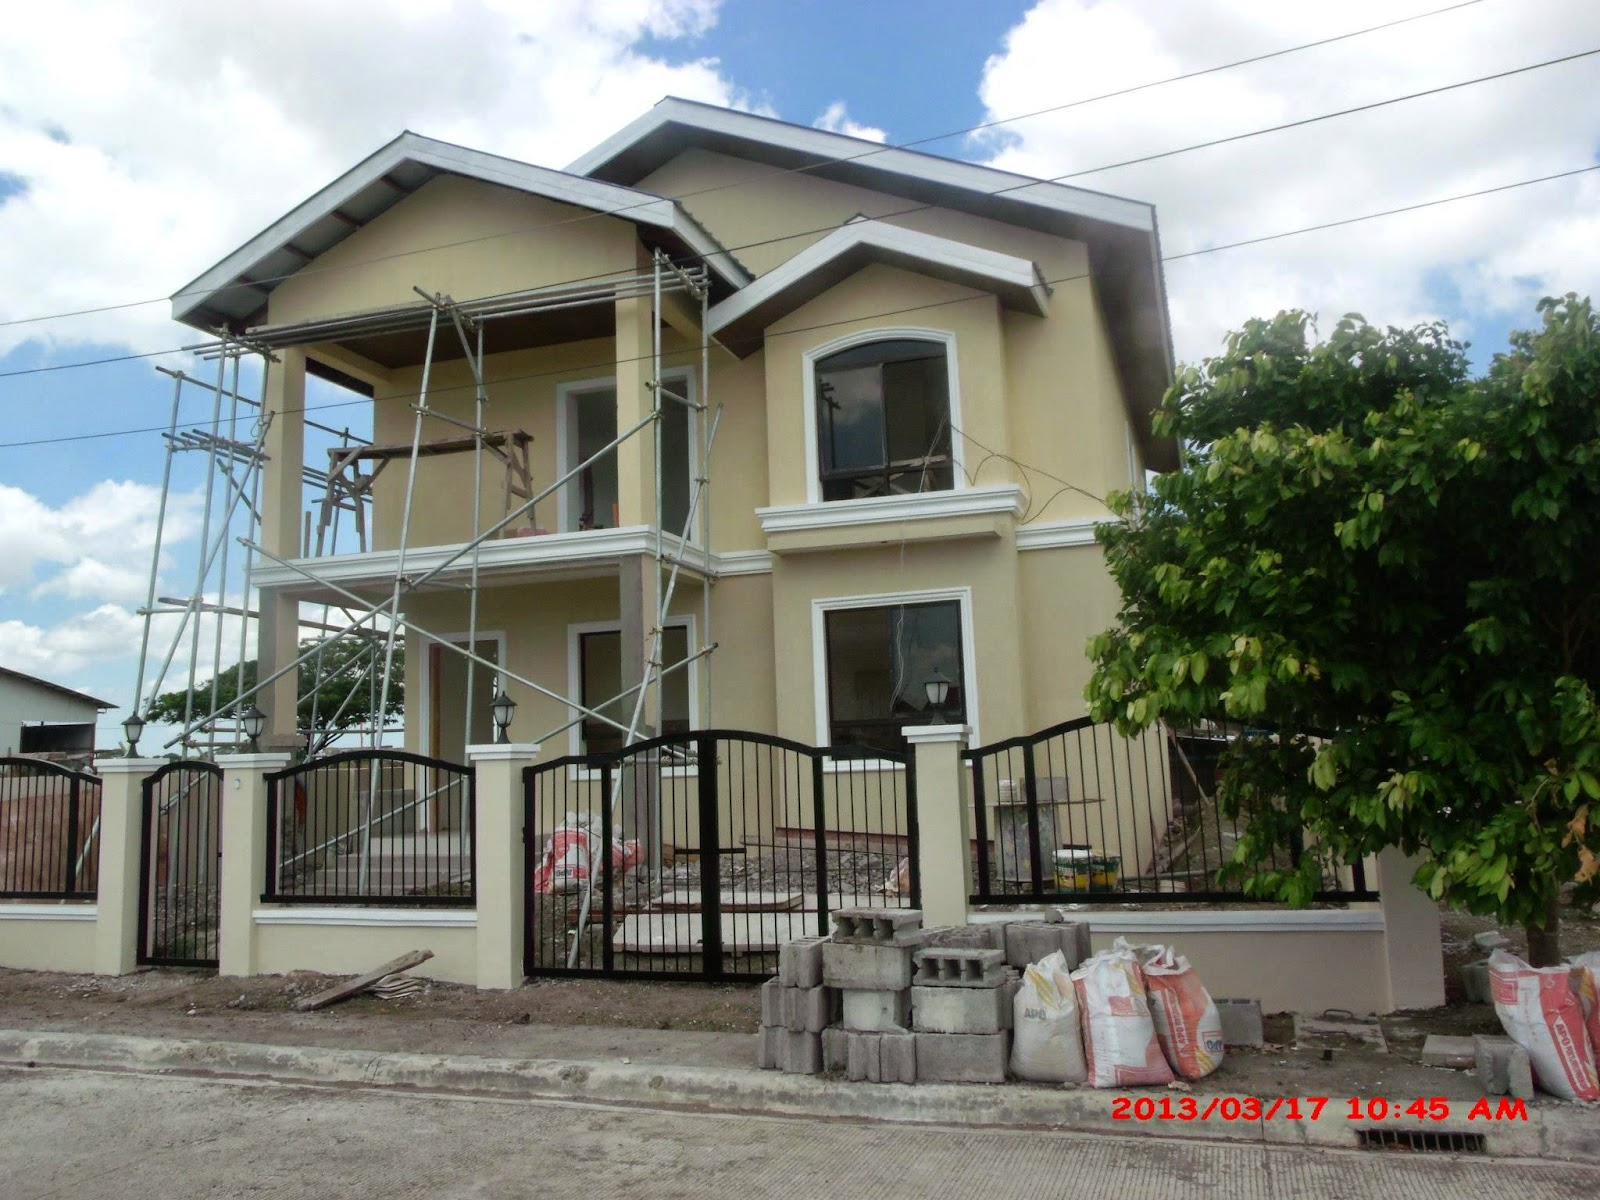 Savannah trails house construction project in oton iloilo for 2 story house design